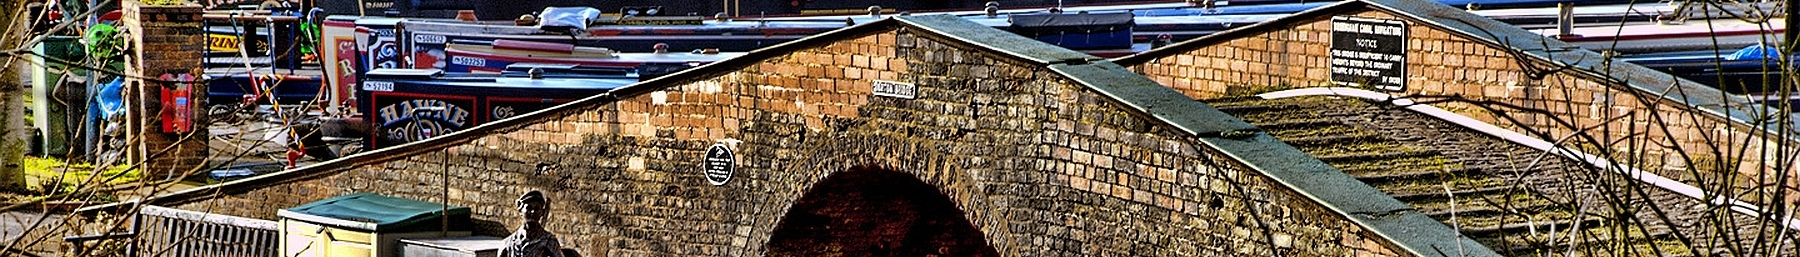 West Midlands banner Burton Bridge.jpg